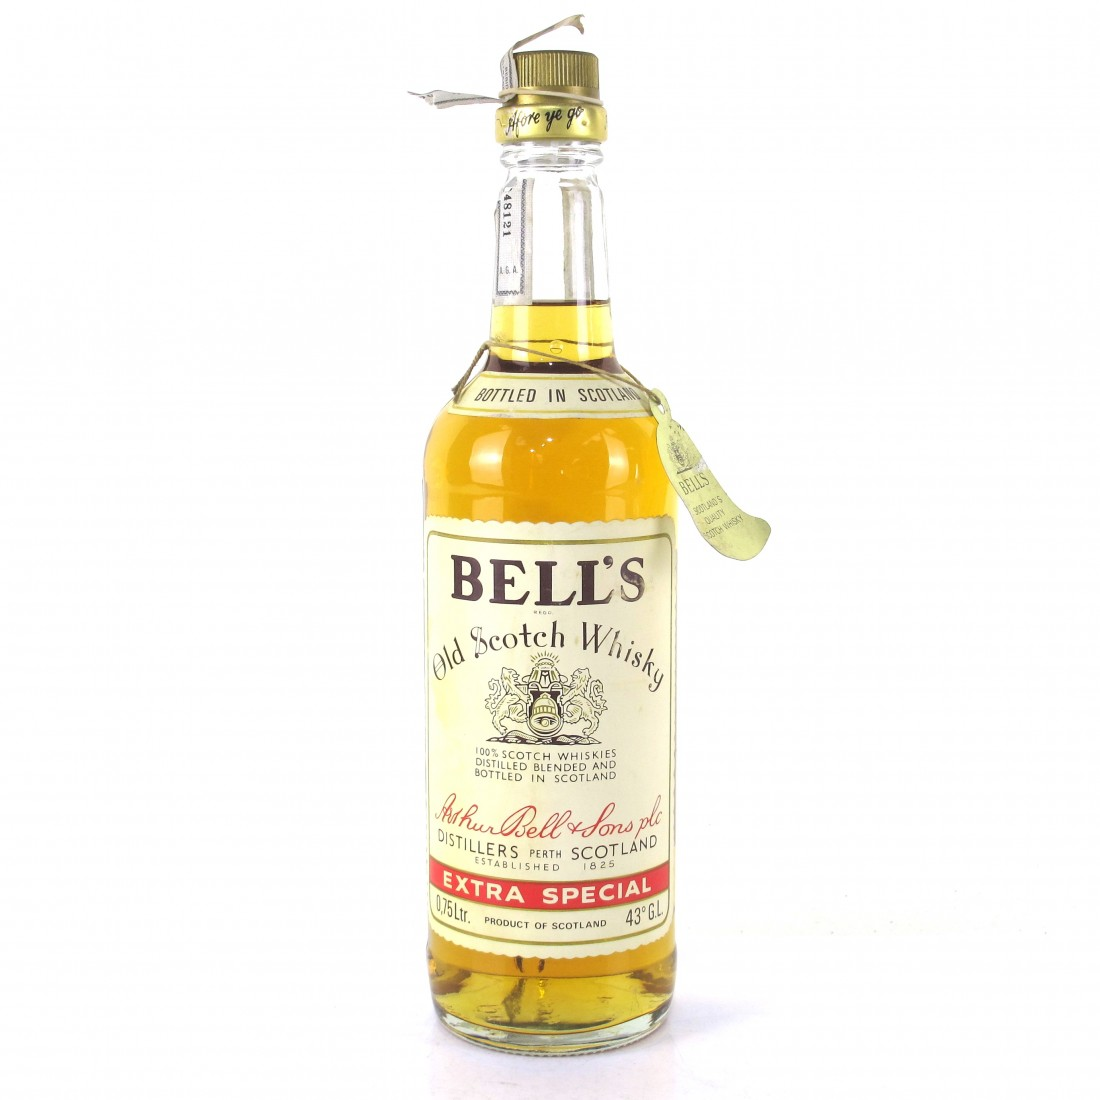 Bell's Old Scotch Whisky 1970s / Portuguese Import